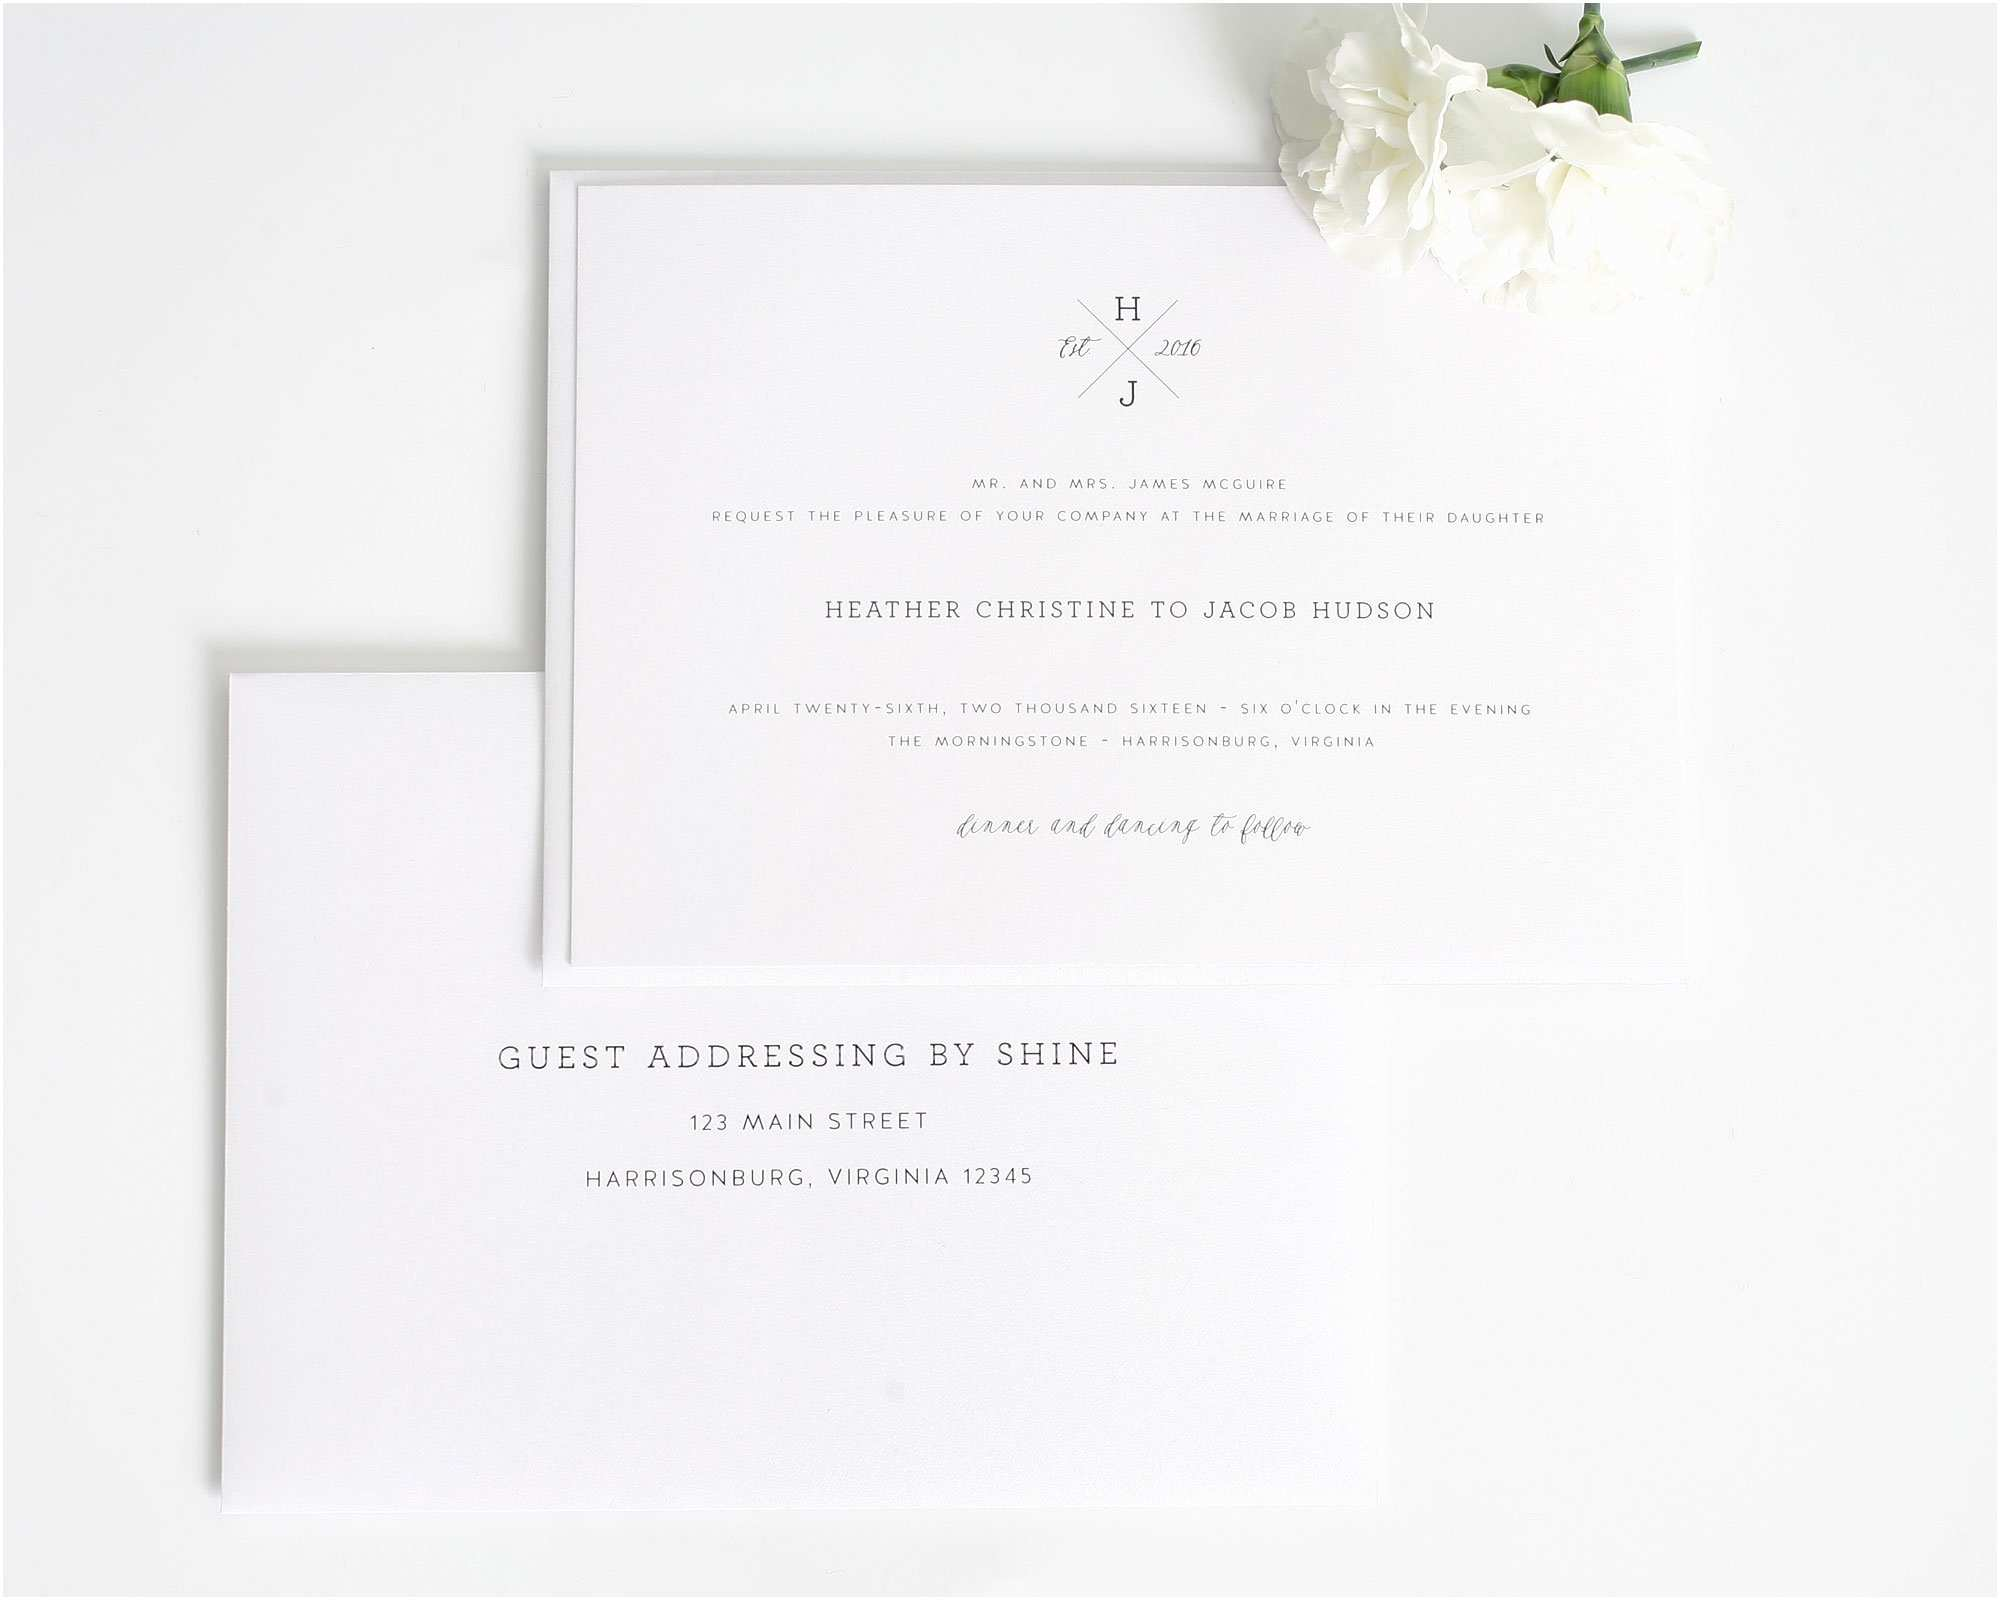 Guest Address Labels for Wedding Invitations Wedding Invitation Etiquette Labels Yaseen for